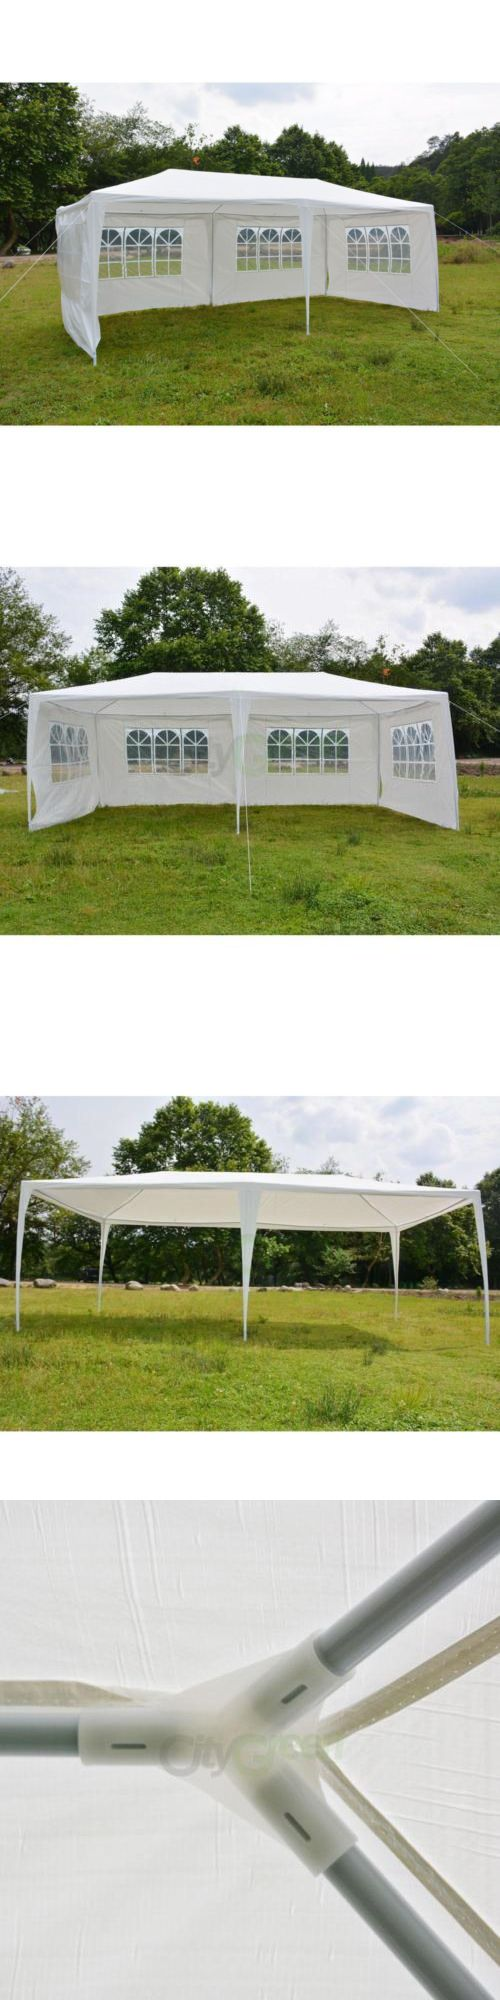 Marquees and Tents 180994: 10 X 20 Party Tent Outdoor Heavy Duty Gazebo Wedding Canopy White 4 Sidewalls -> BUY IT NOW ONLY: $62.55 on eBay!